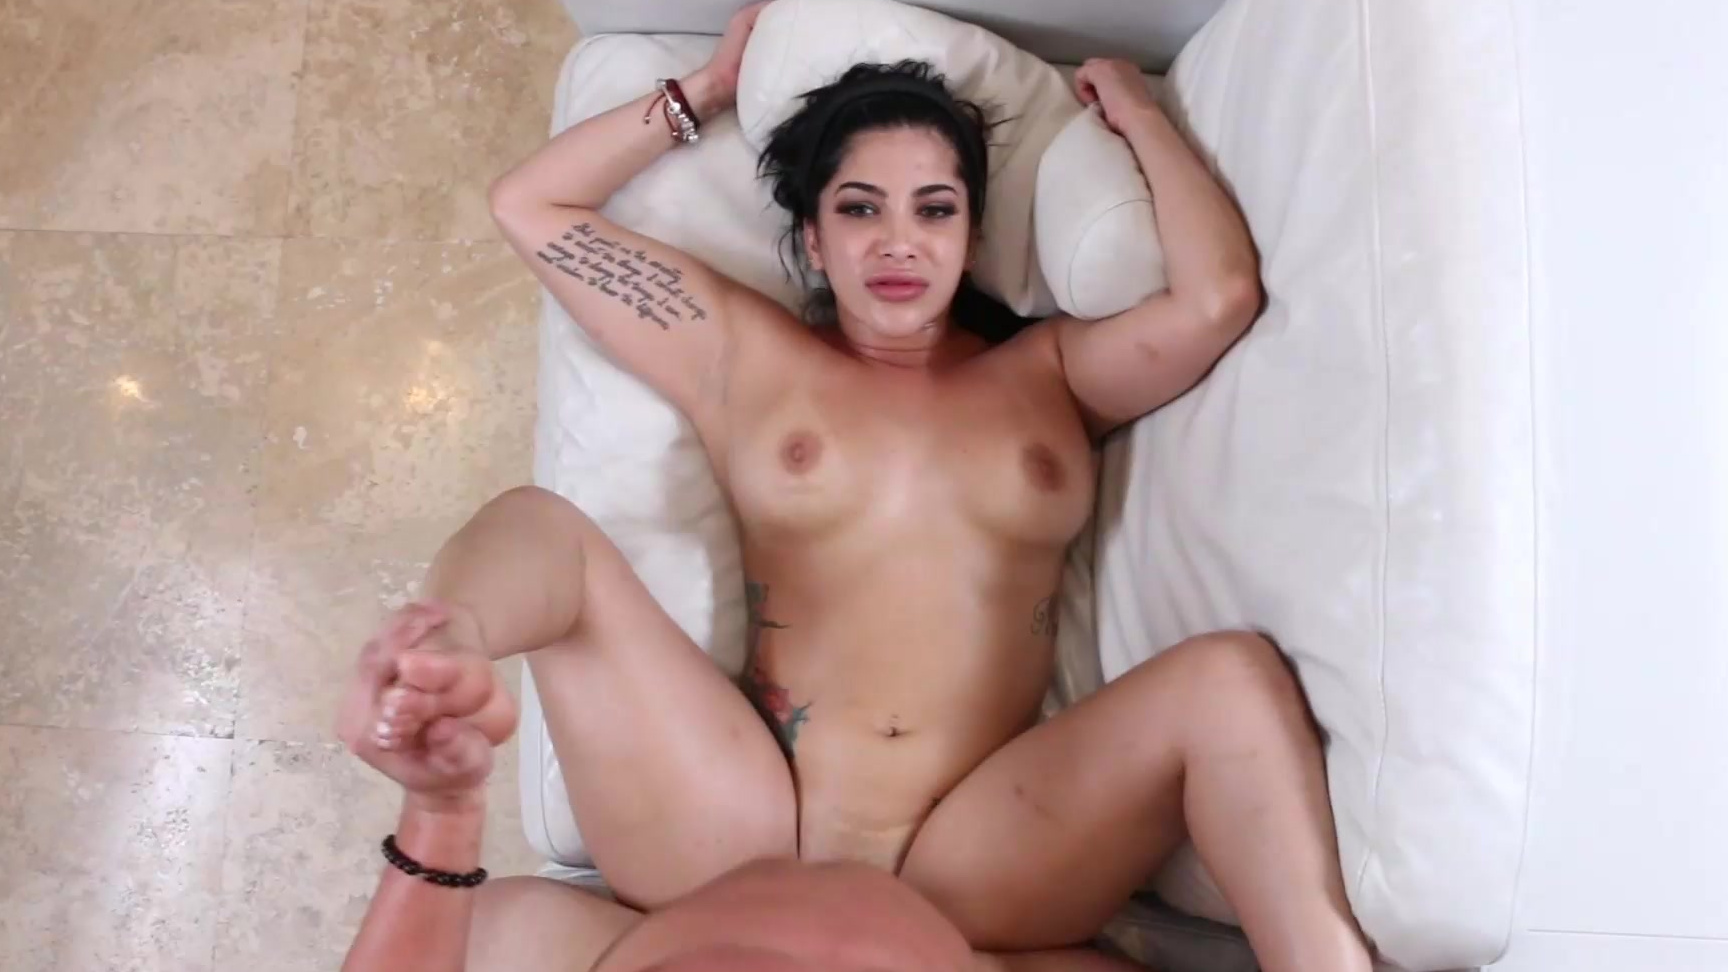 Big tit british pornstars